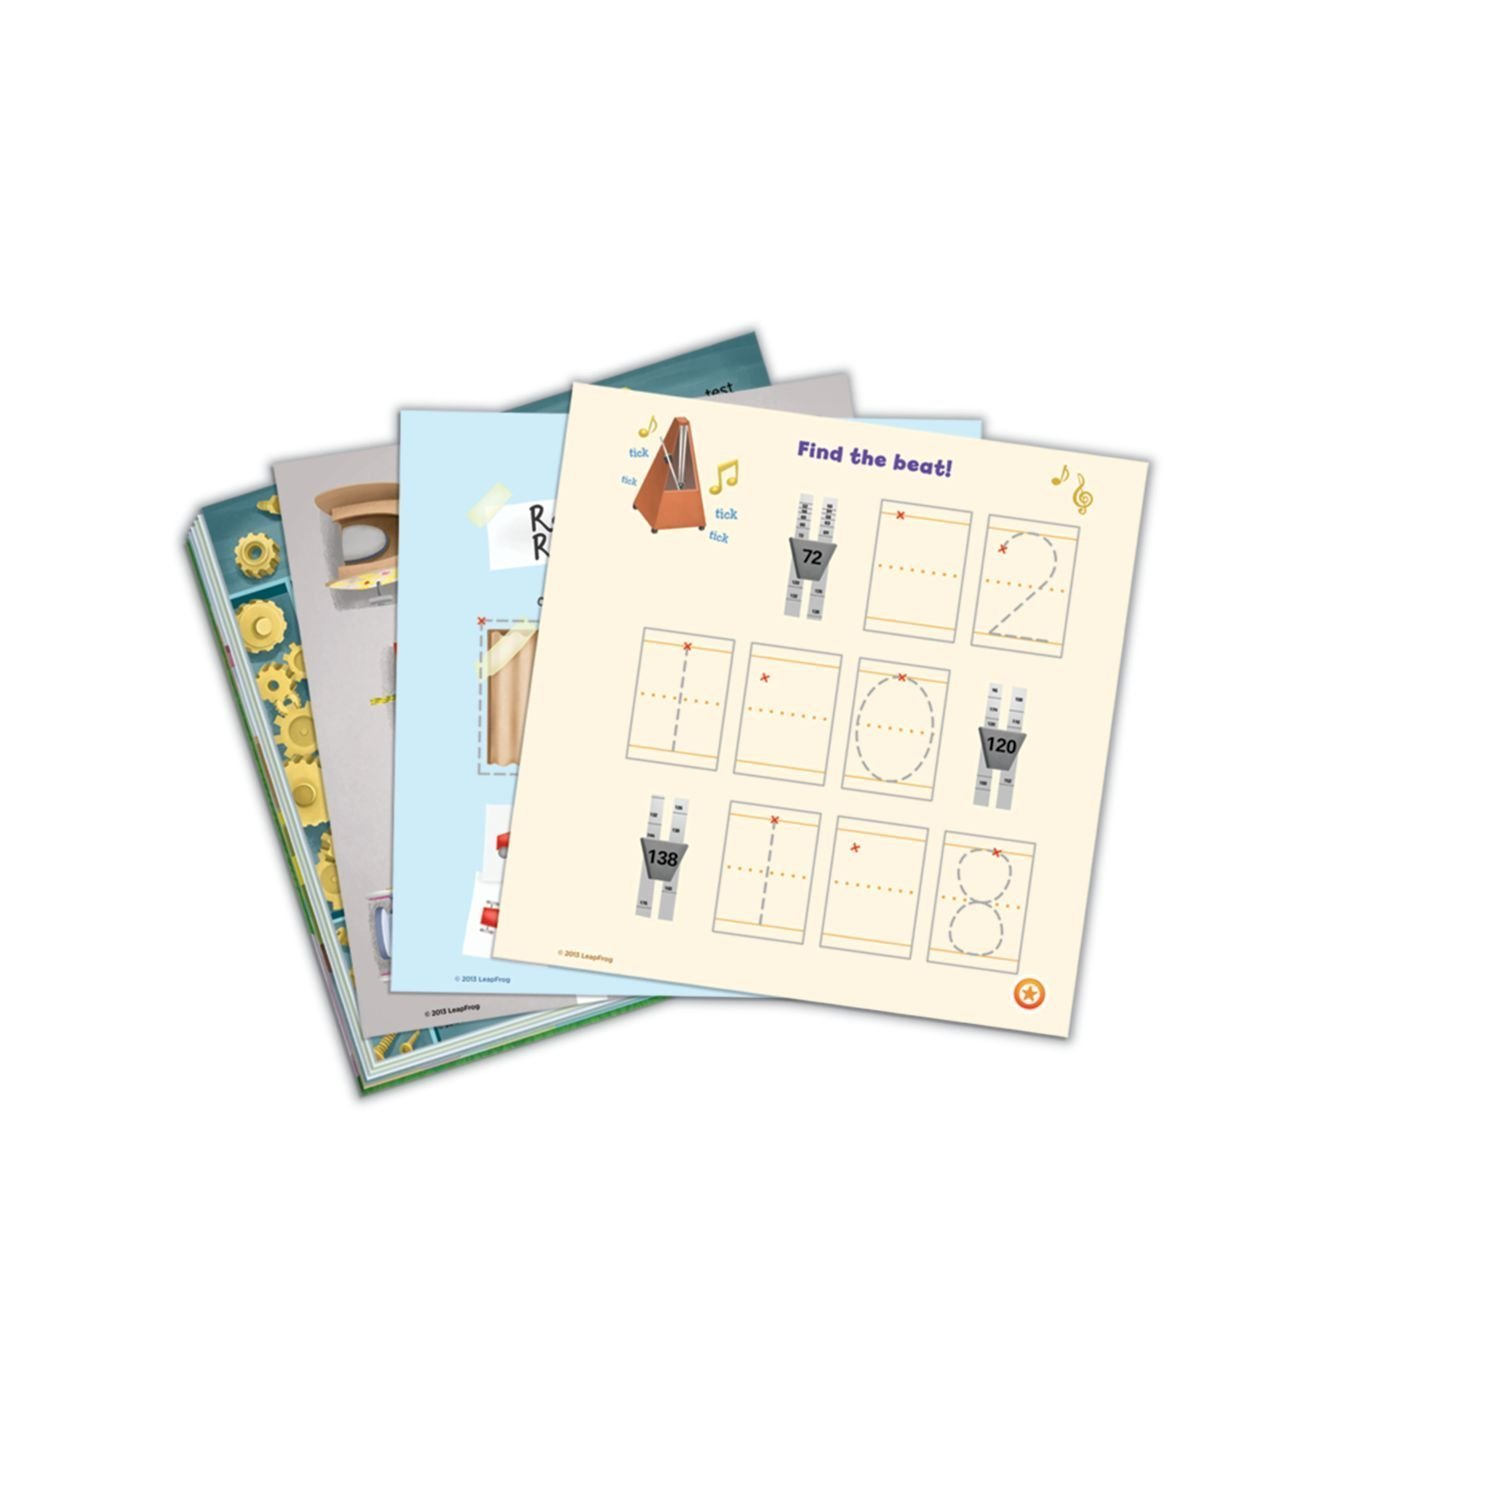 LeapFrog LeapReader Writing Workbook: Write it! Engineering A Win & LeapReader Read & Write System Green, Ages 4-8 Years, Interactive Learning System For Kids, STEM, Educational Tools, Activity Bundle by LeapFrog (Image #3)